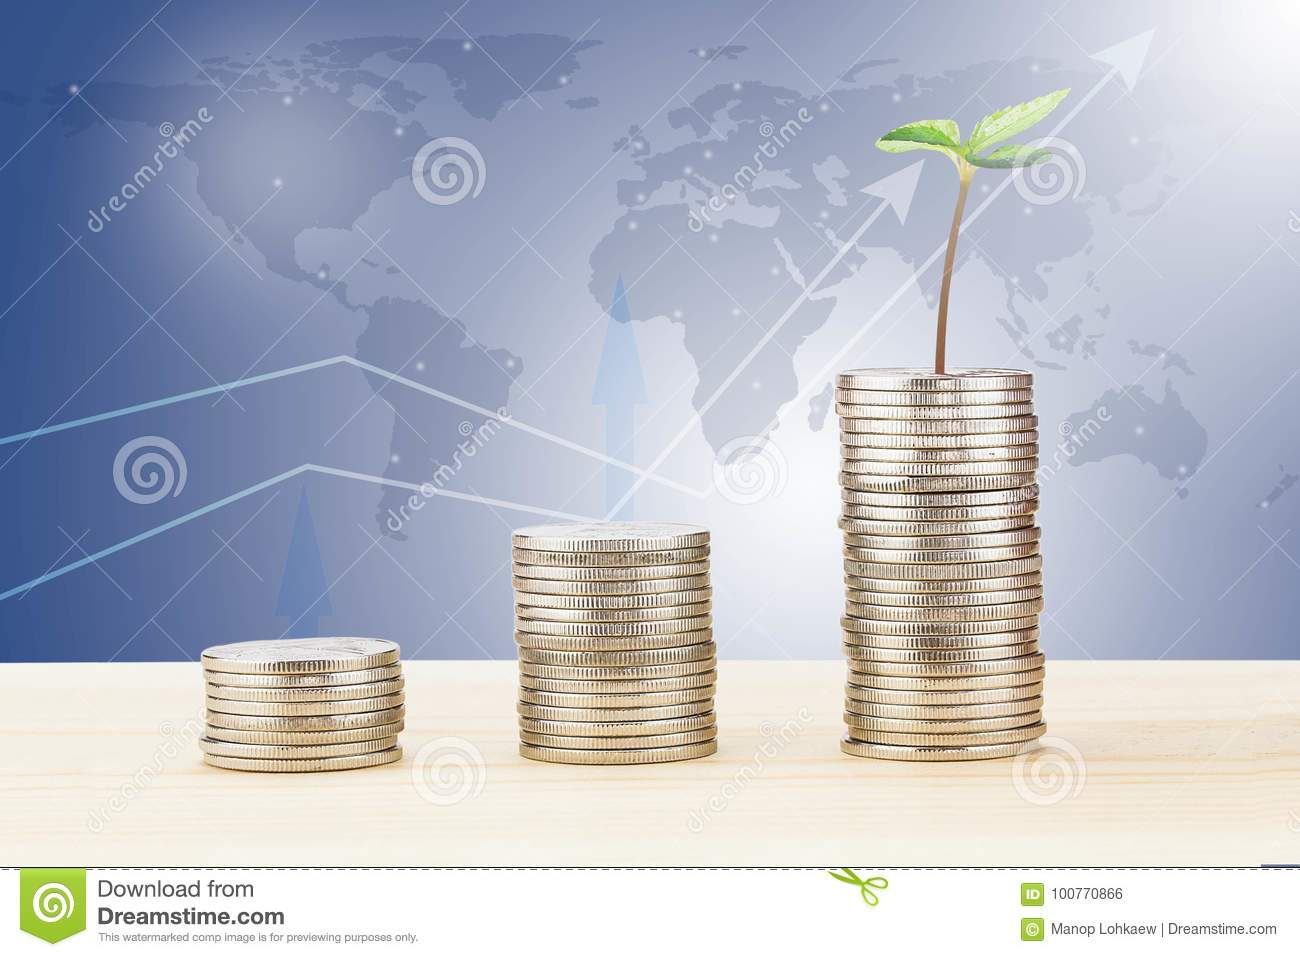 Sprout growing from stack of coins on wooden desk on blurred world map and line graph background